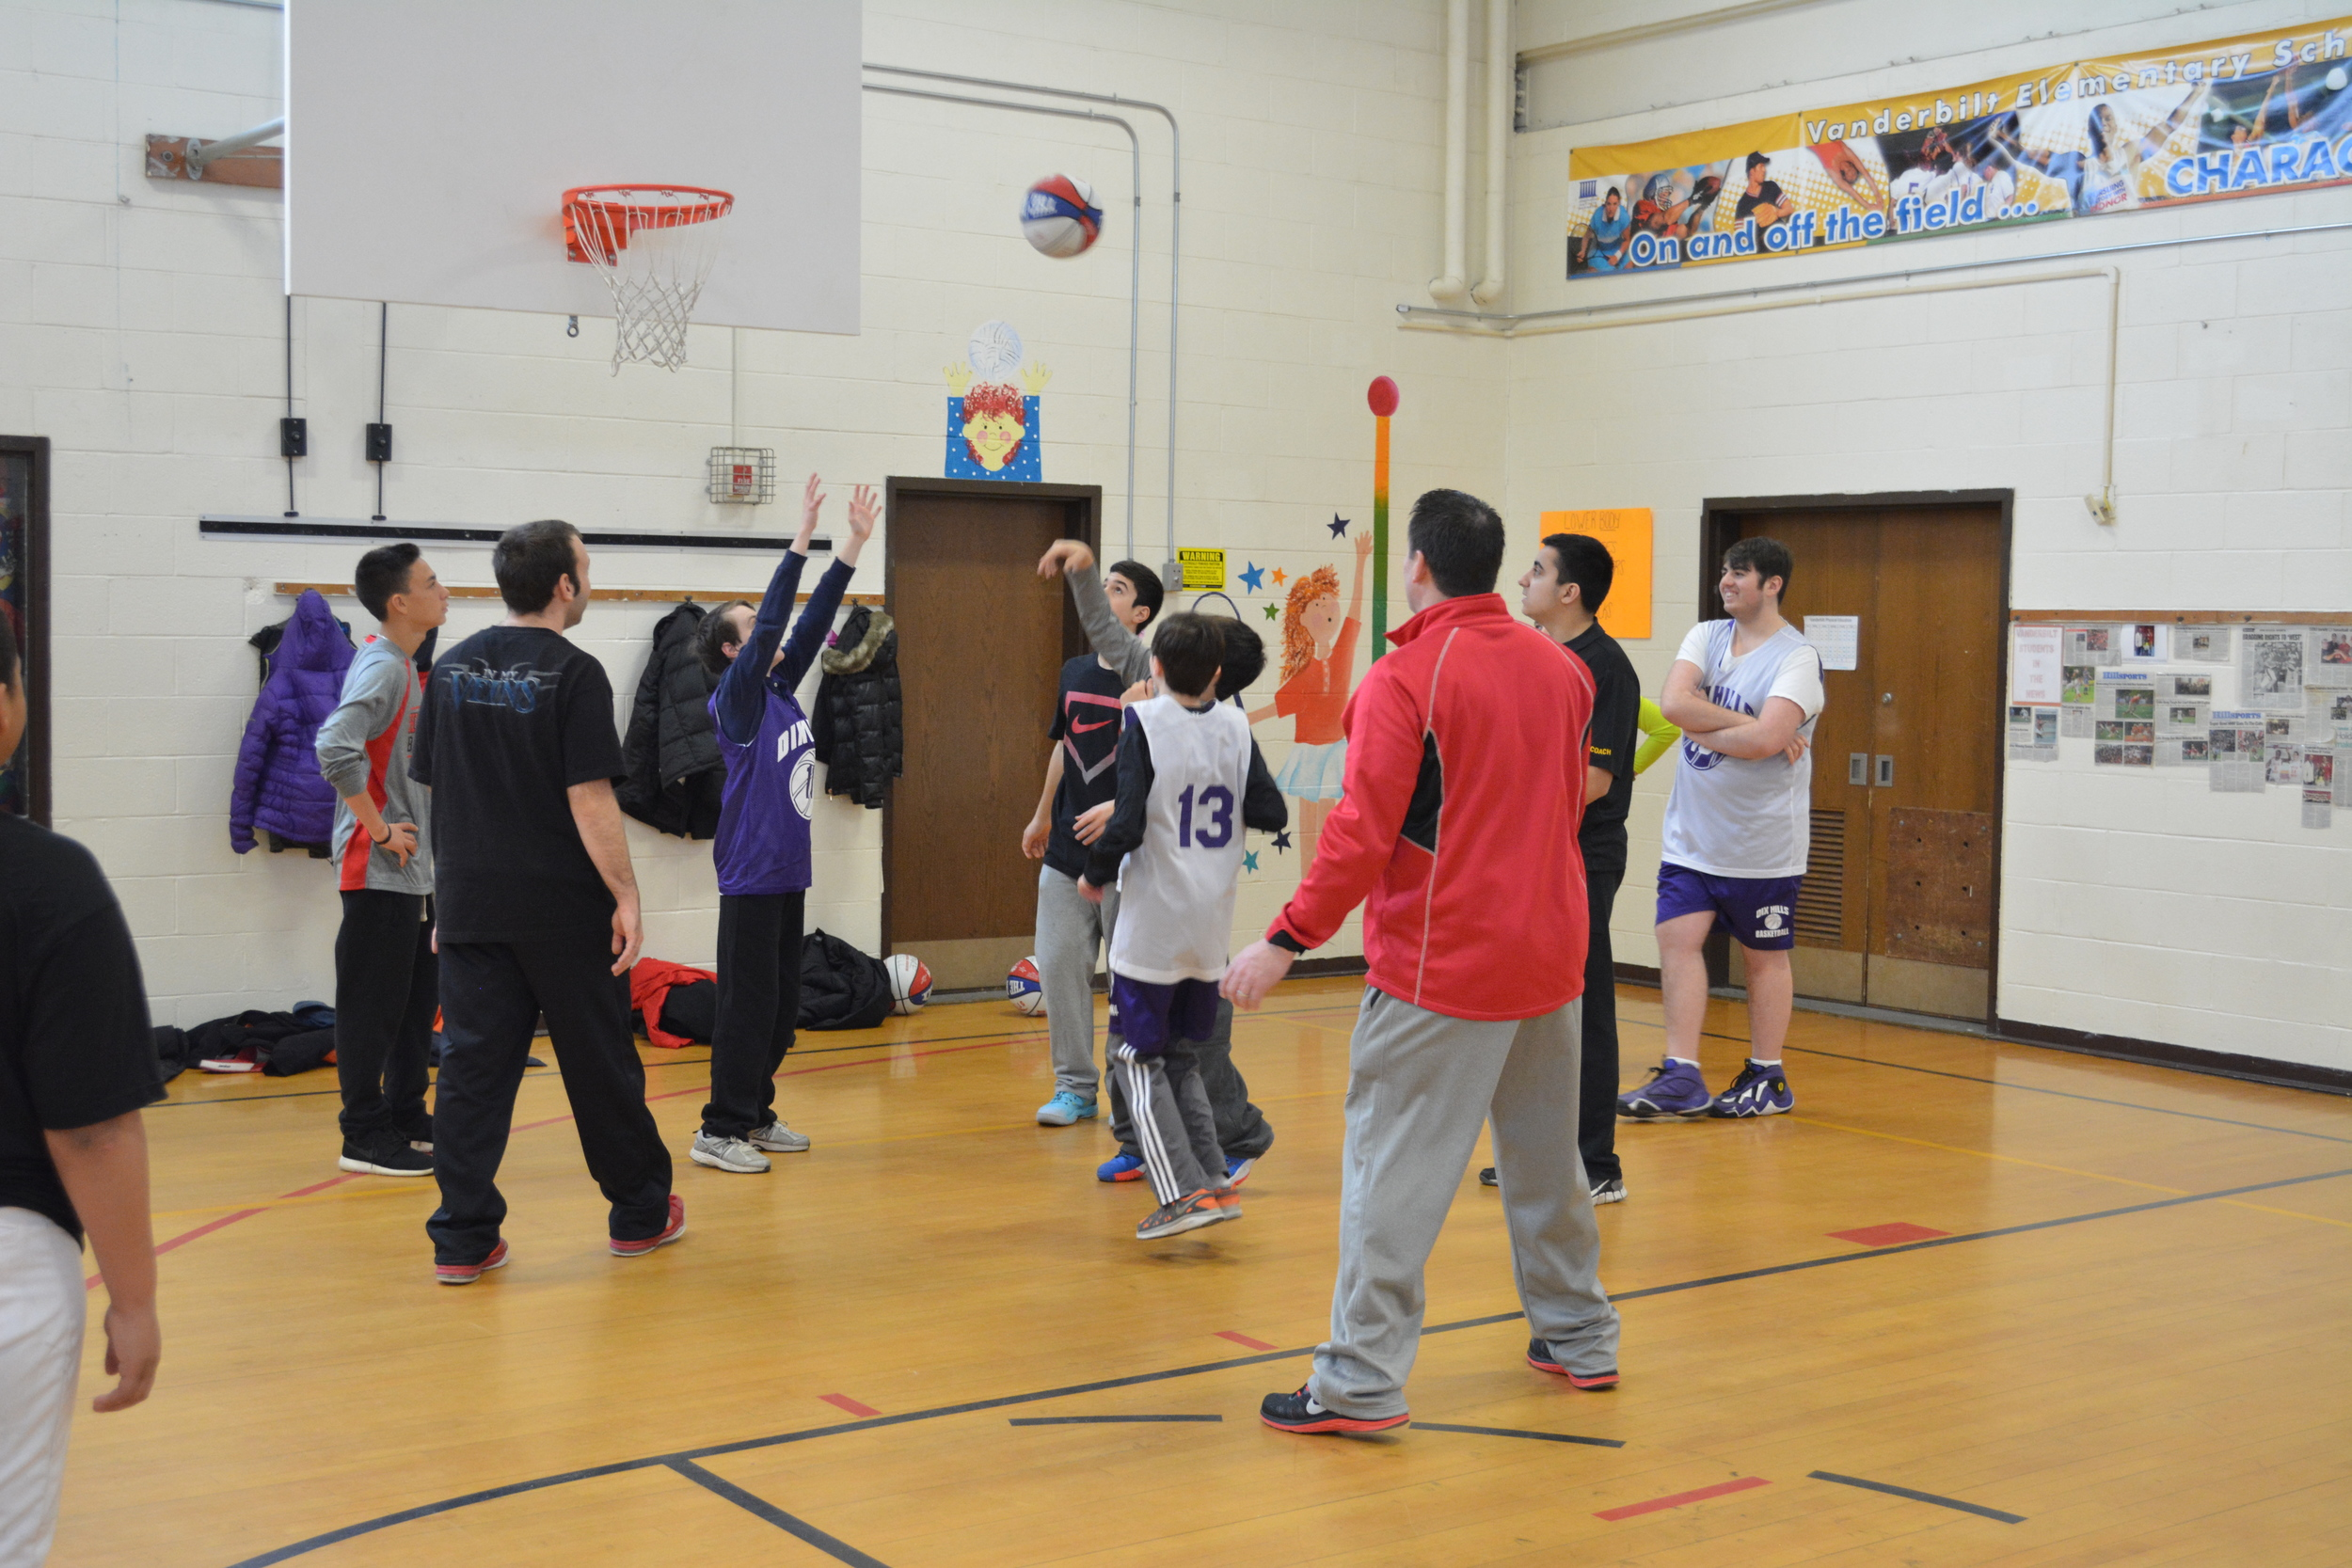 On Saturday morning, several members of the Half Hollow Hills High School East basketball program volunteered their time to work with the kids of Dix Hills Basketball Association's Challenger Program. Inset, a team huddle caps of the day with Michael Pliskin, right, one of the program's coaches, leading the wrap-up.